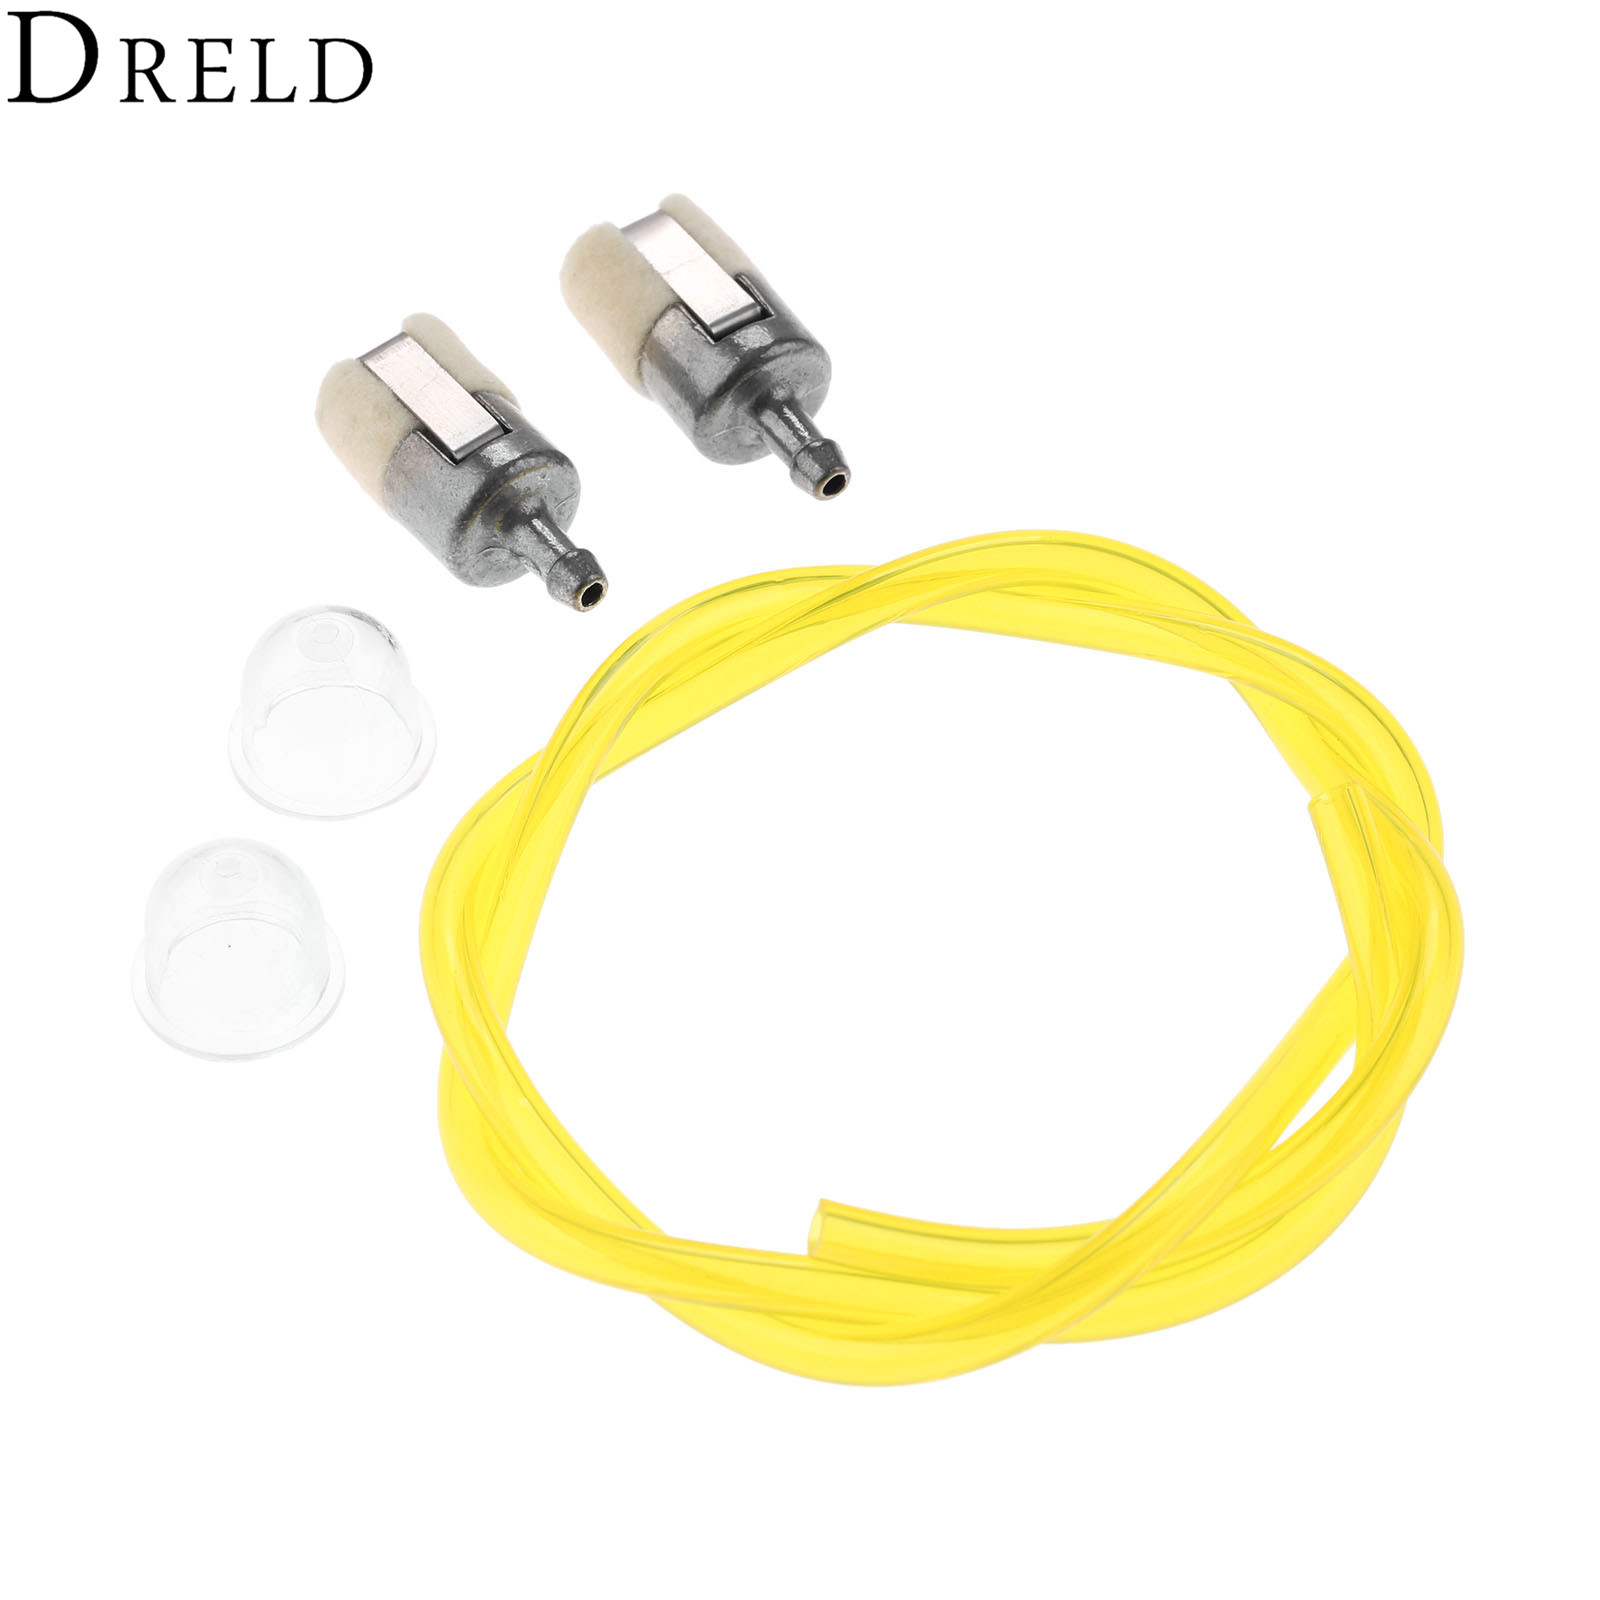 DRELD 5Pcs/set Primer Bulb +Fuel Filter +Fuel Line Hose Tube For HONDA GX22 GX25 GX31 Rototiller String Trimmer Brush Cutter